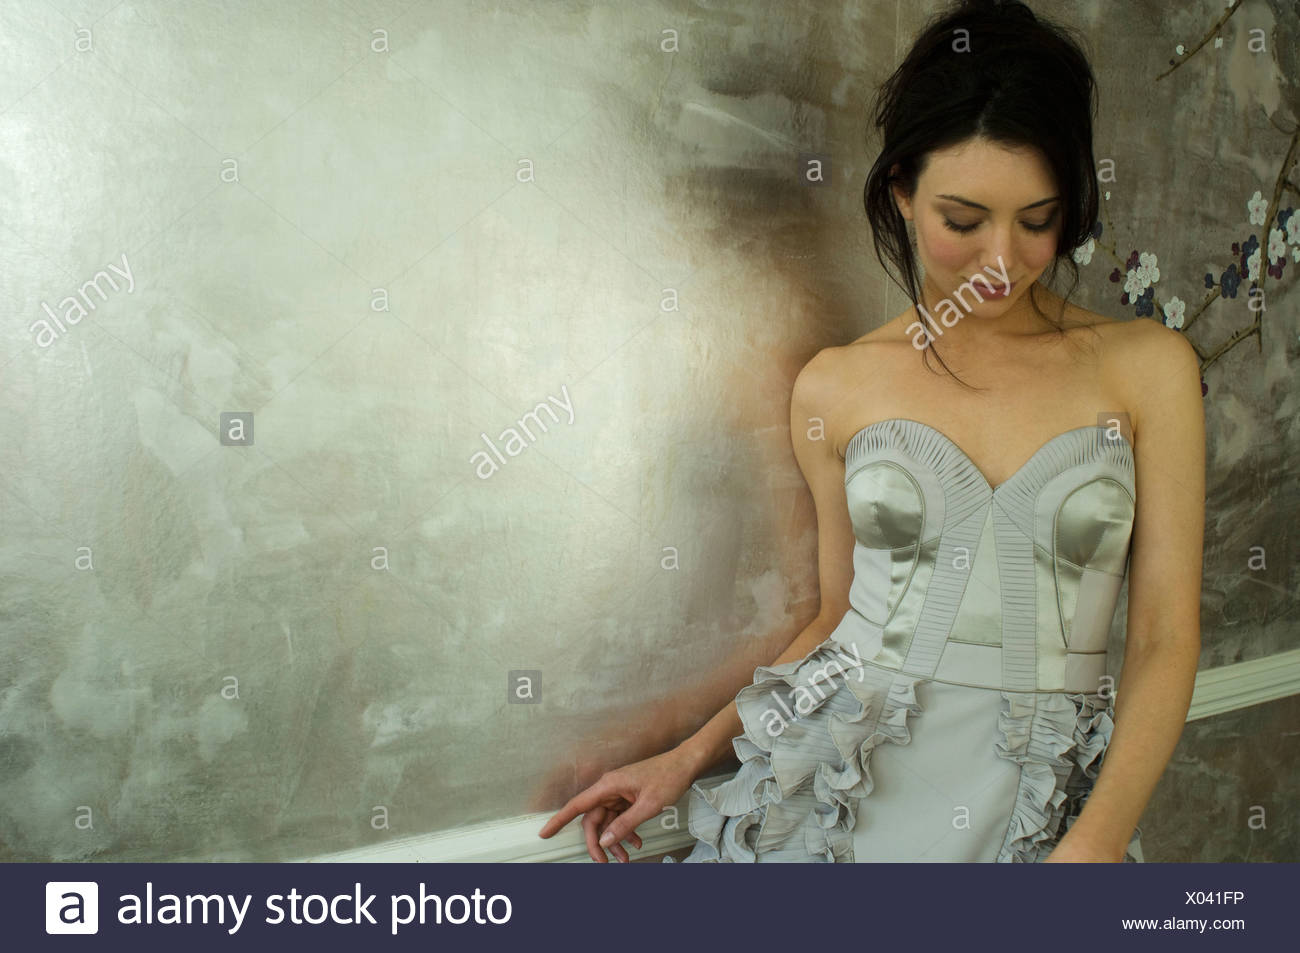 Woman wearing gown by ornate wallpaper - Stock Image